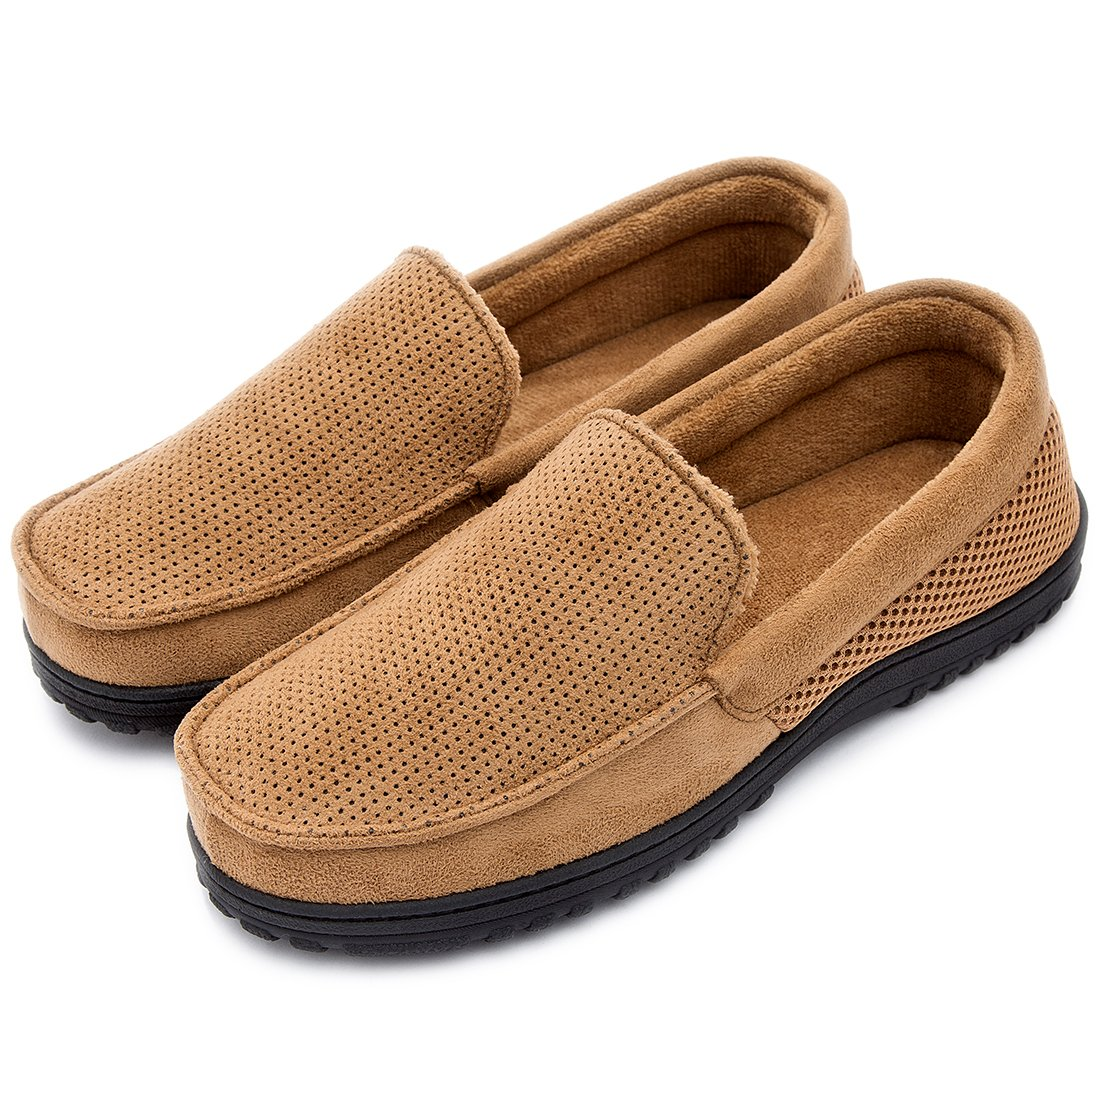 Men's Breathable Micro Suede Memory Foam Moccasins Slippers Plush Fleece Indoor/Outdoor Loafer Shoes w/Arch Supports (10 D(M) US, Tan)